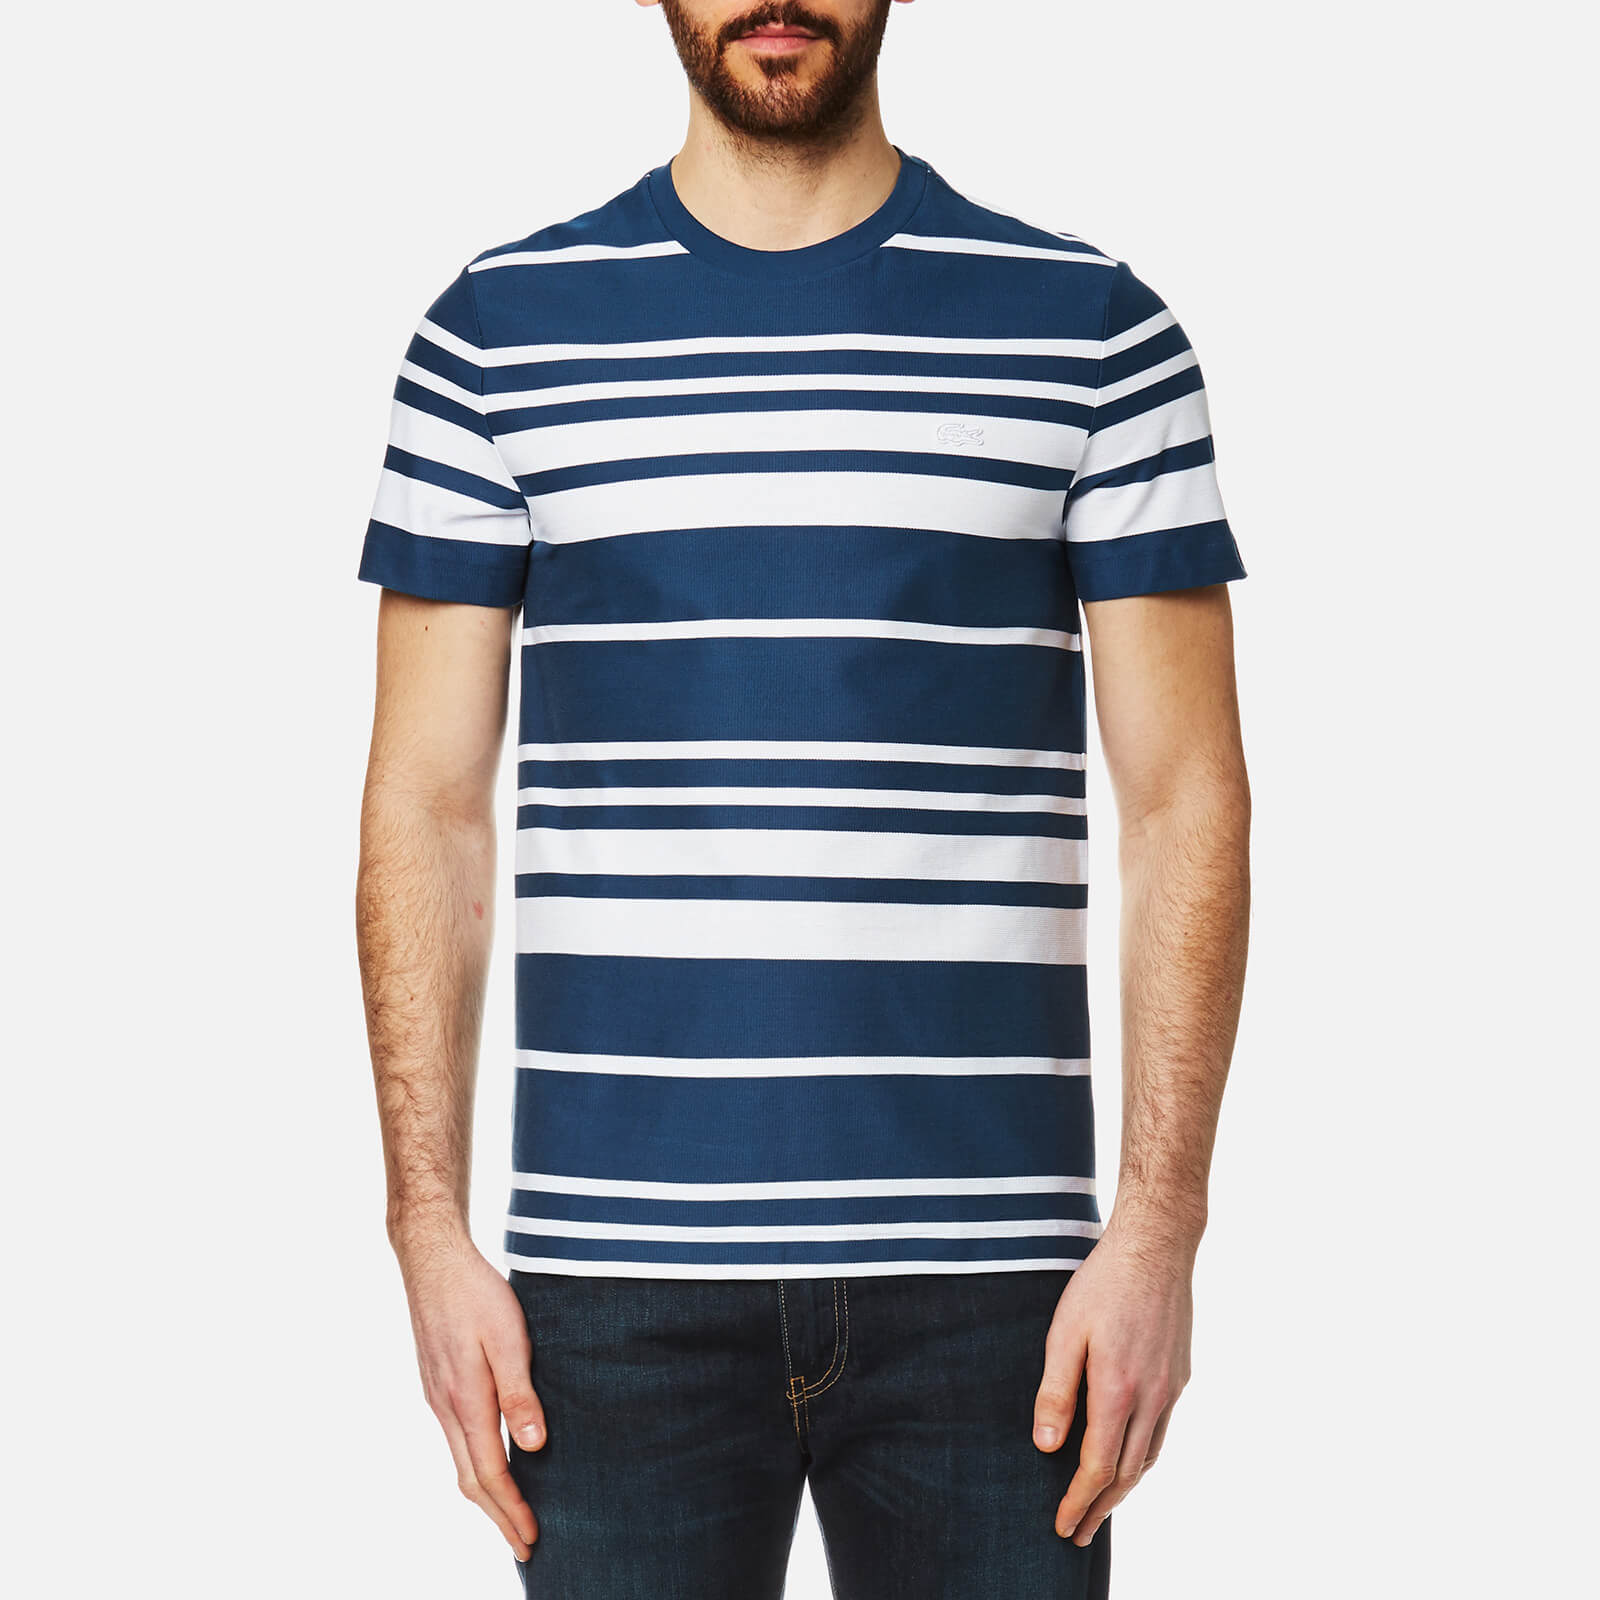 c6ade7cea1c54 Lacoste Men s Striped T-Shirt - Inkwell White - Free UK Delivery over £50